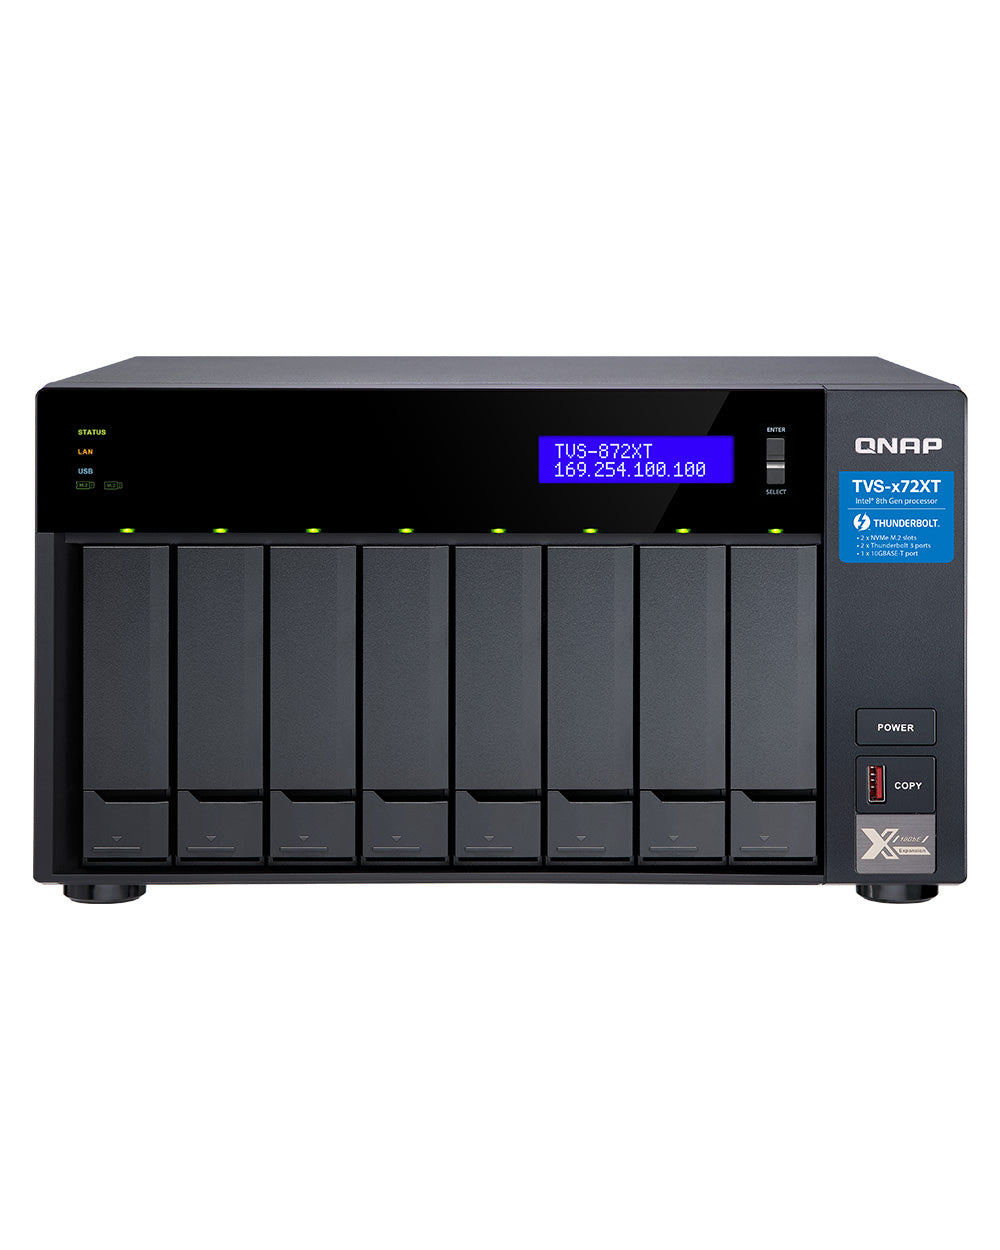 QNAP TVS-872XT-i5-16G 8 Bay Diskless NAS only $1835.00 from QNAP Direct